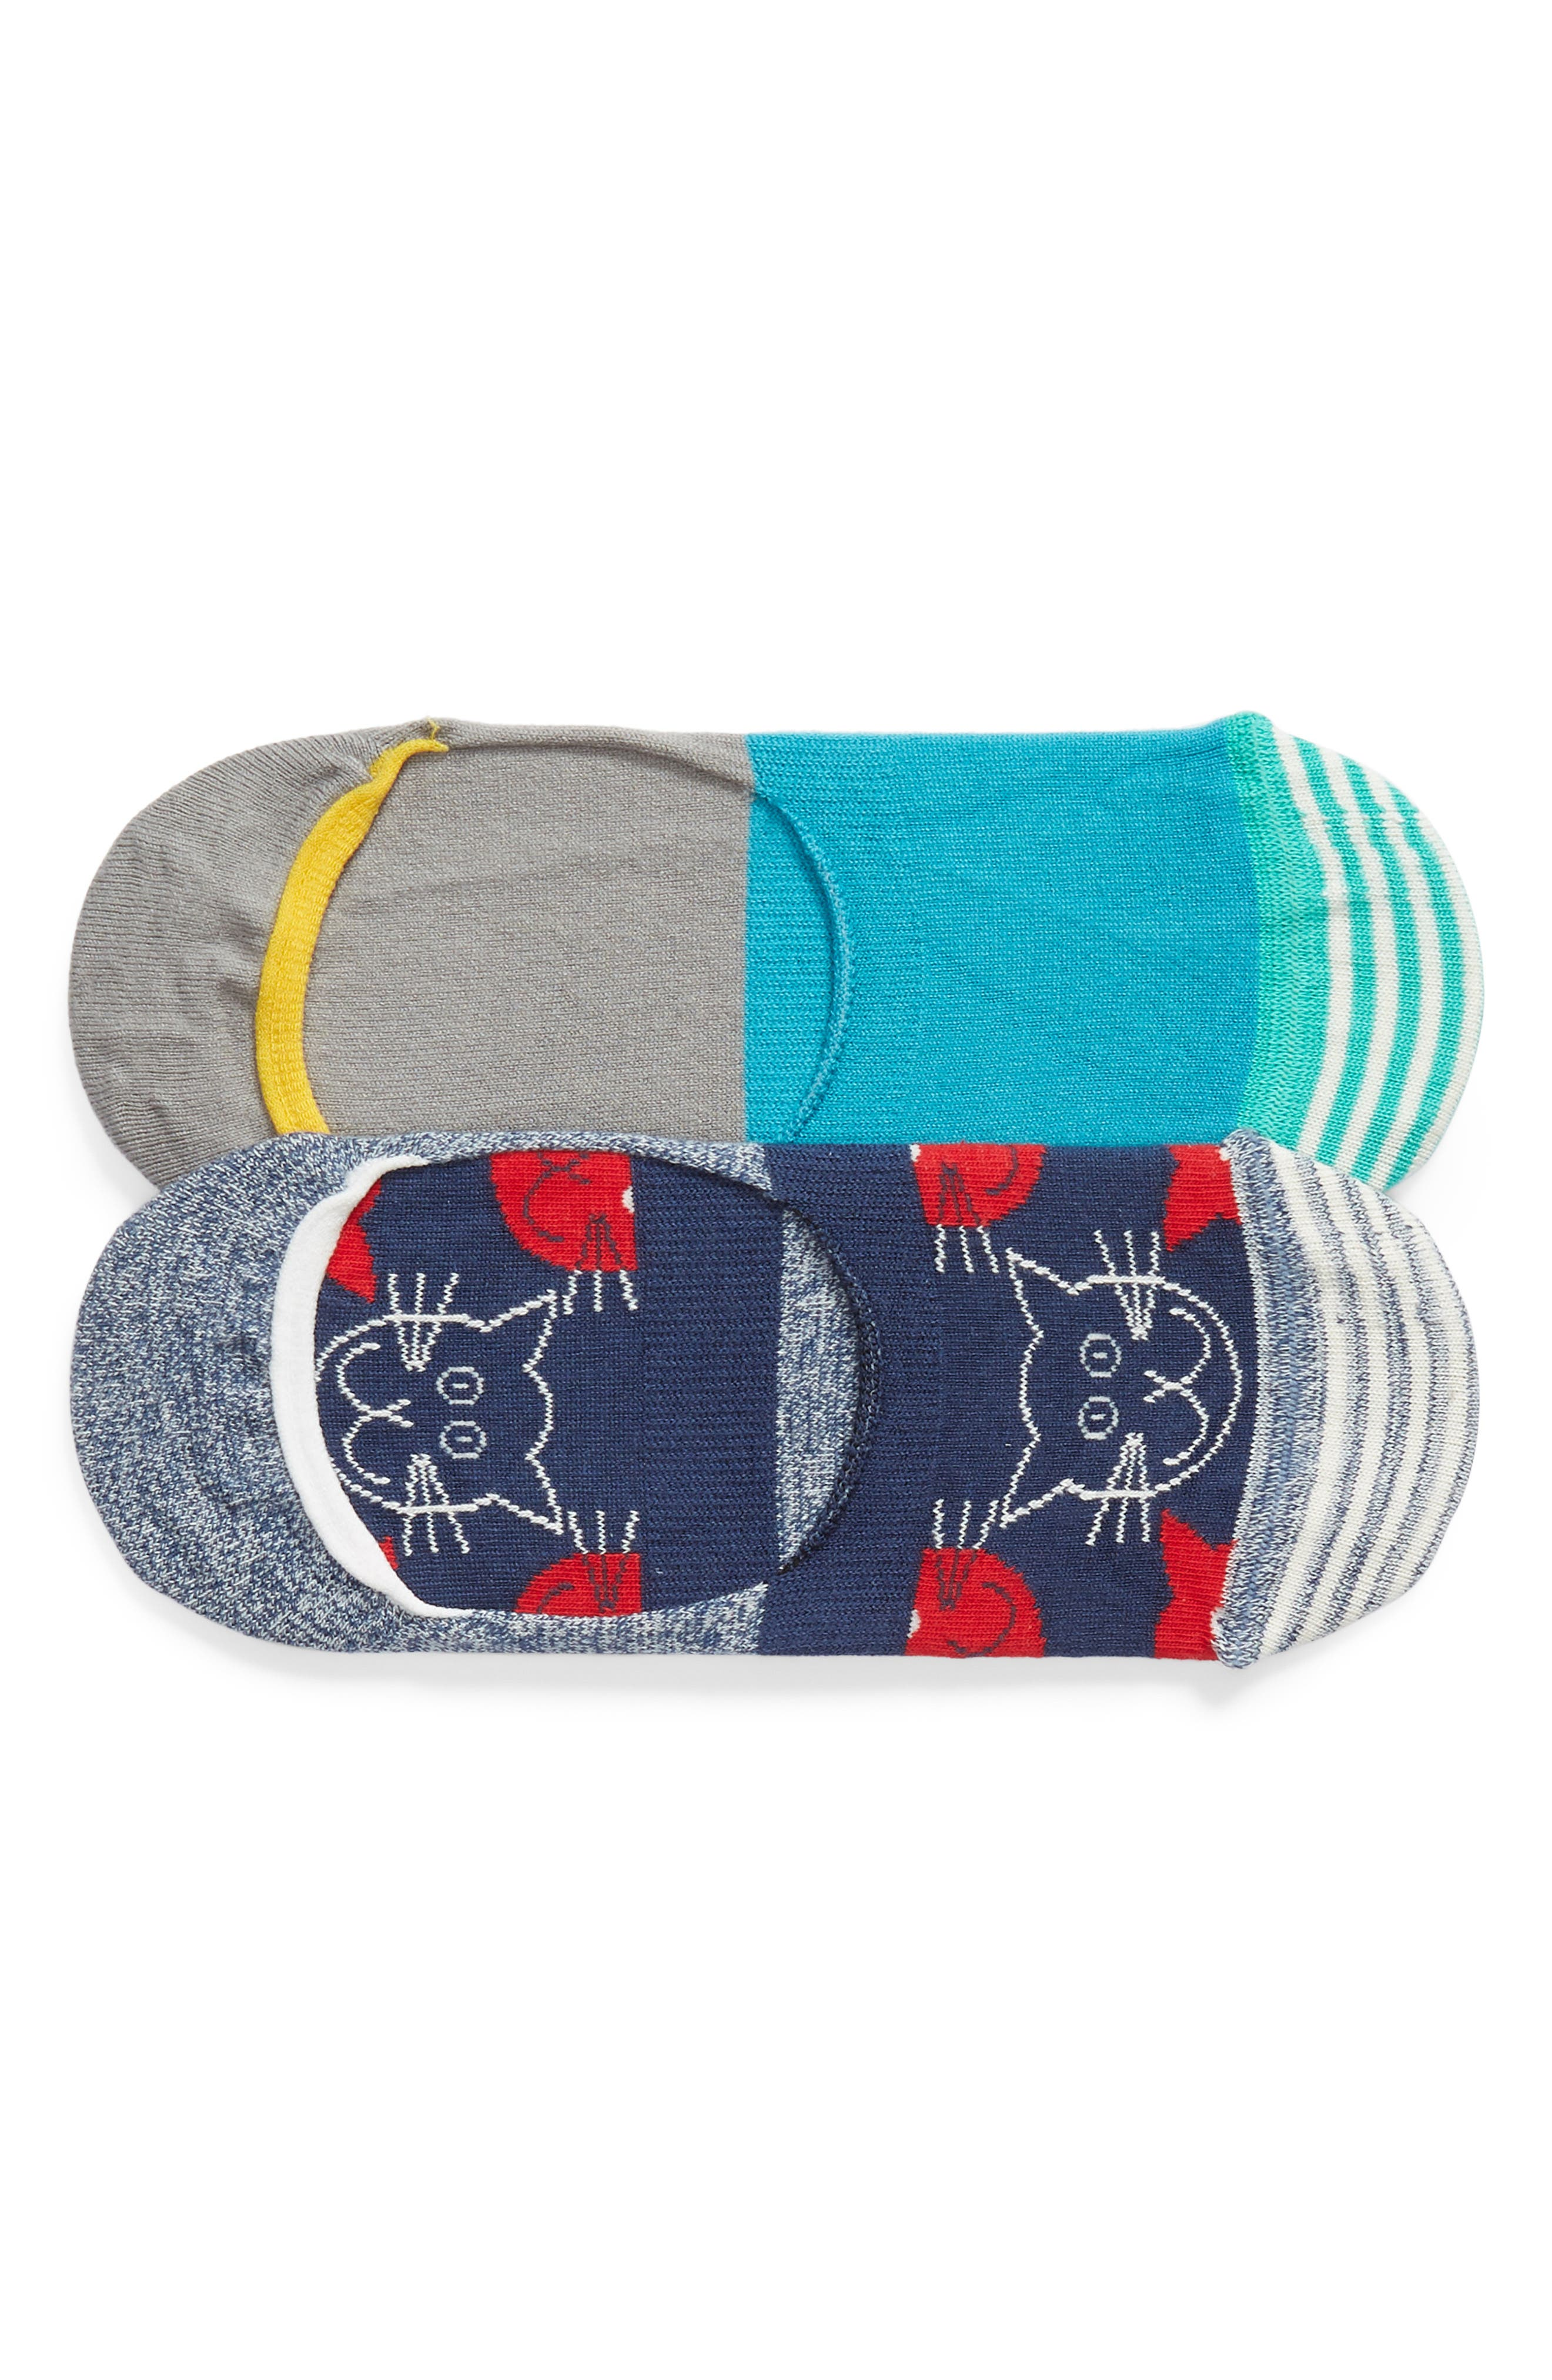 Cats Assorted 2-Pack No-Show Socks,                             Main thumbnail 1, color,                             Blue